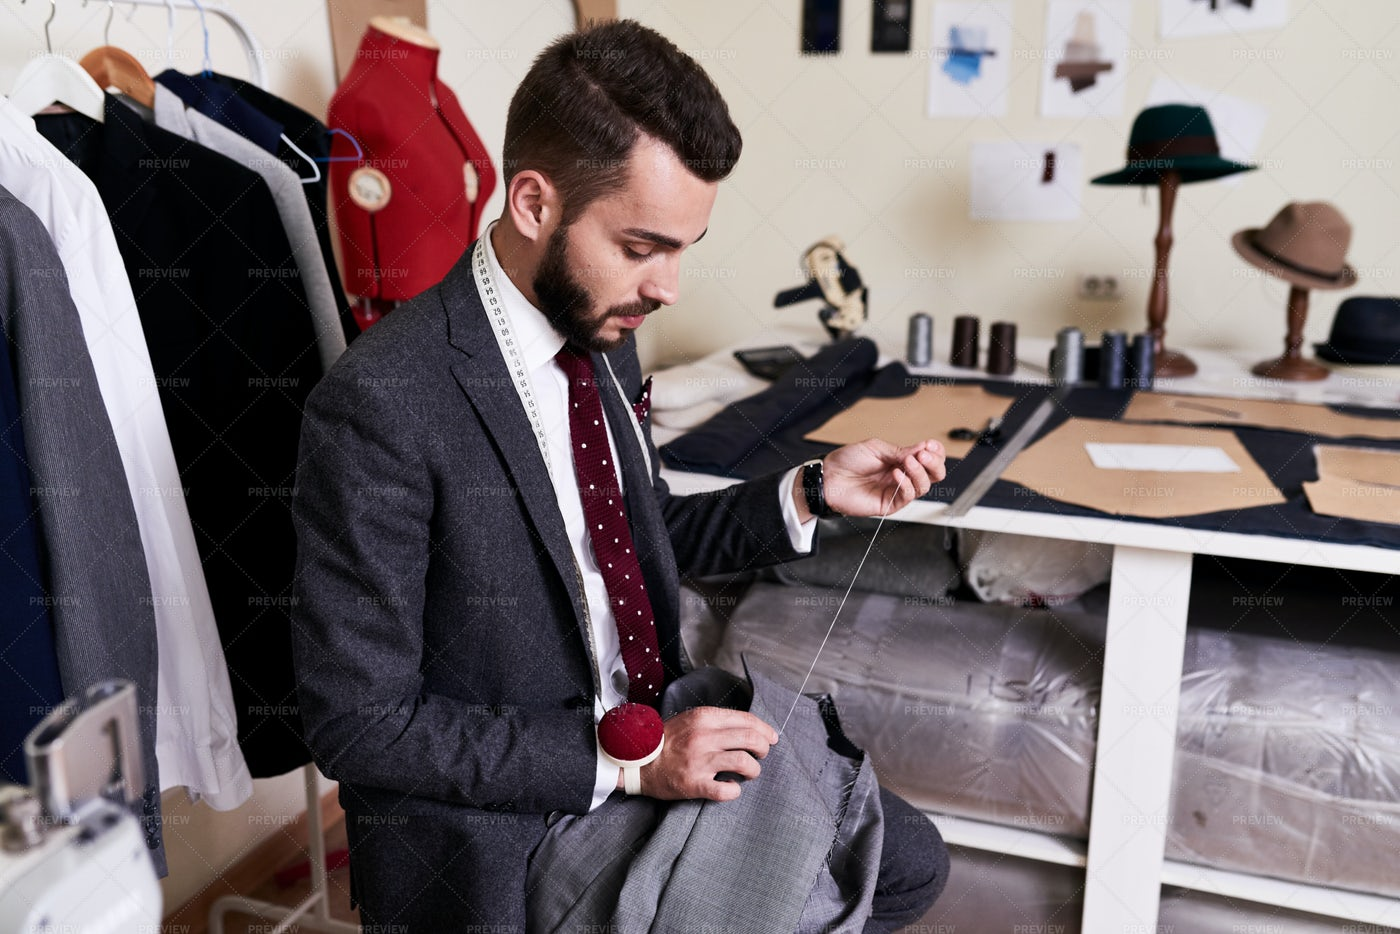 Handsome Tailor Making Jacket In...: Stock Photos